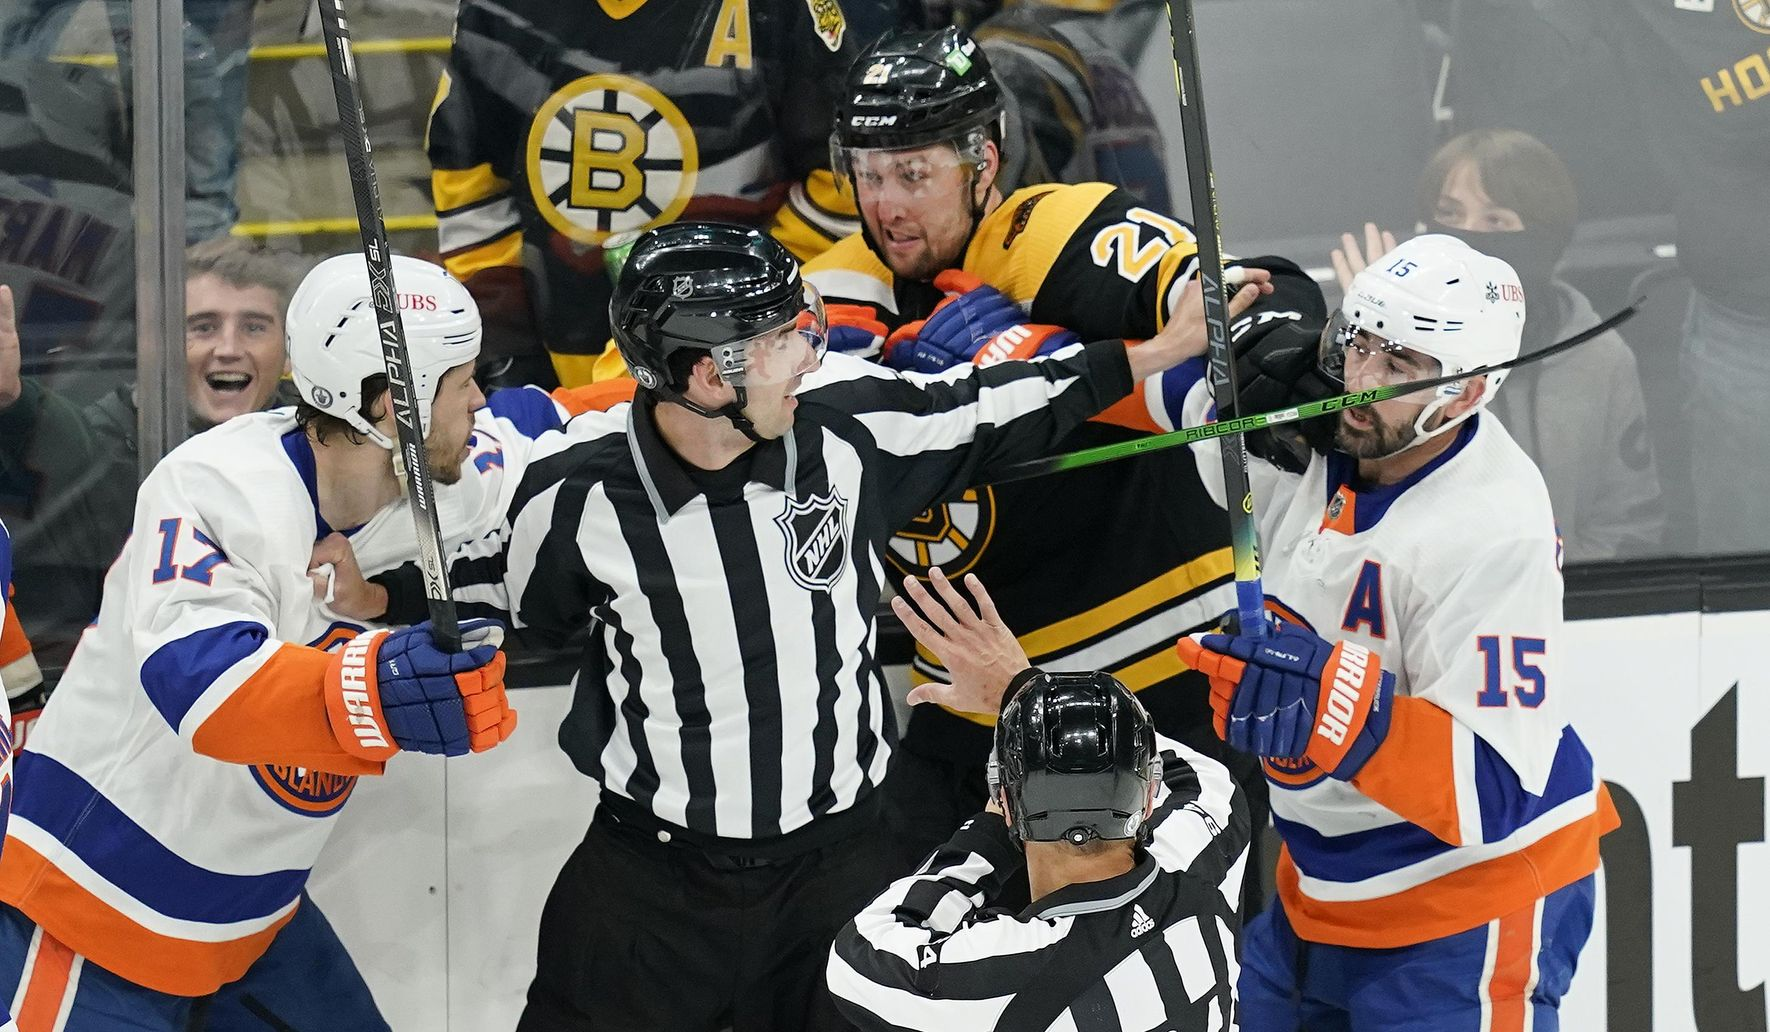 Officiating takes center stage midway through NHL playoffs